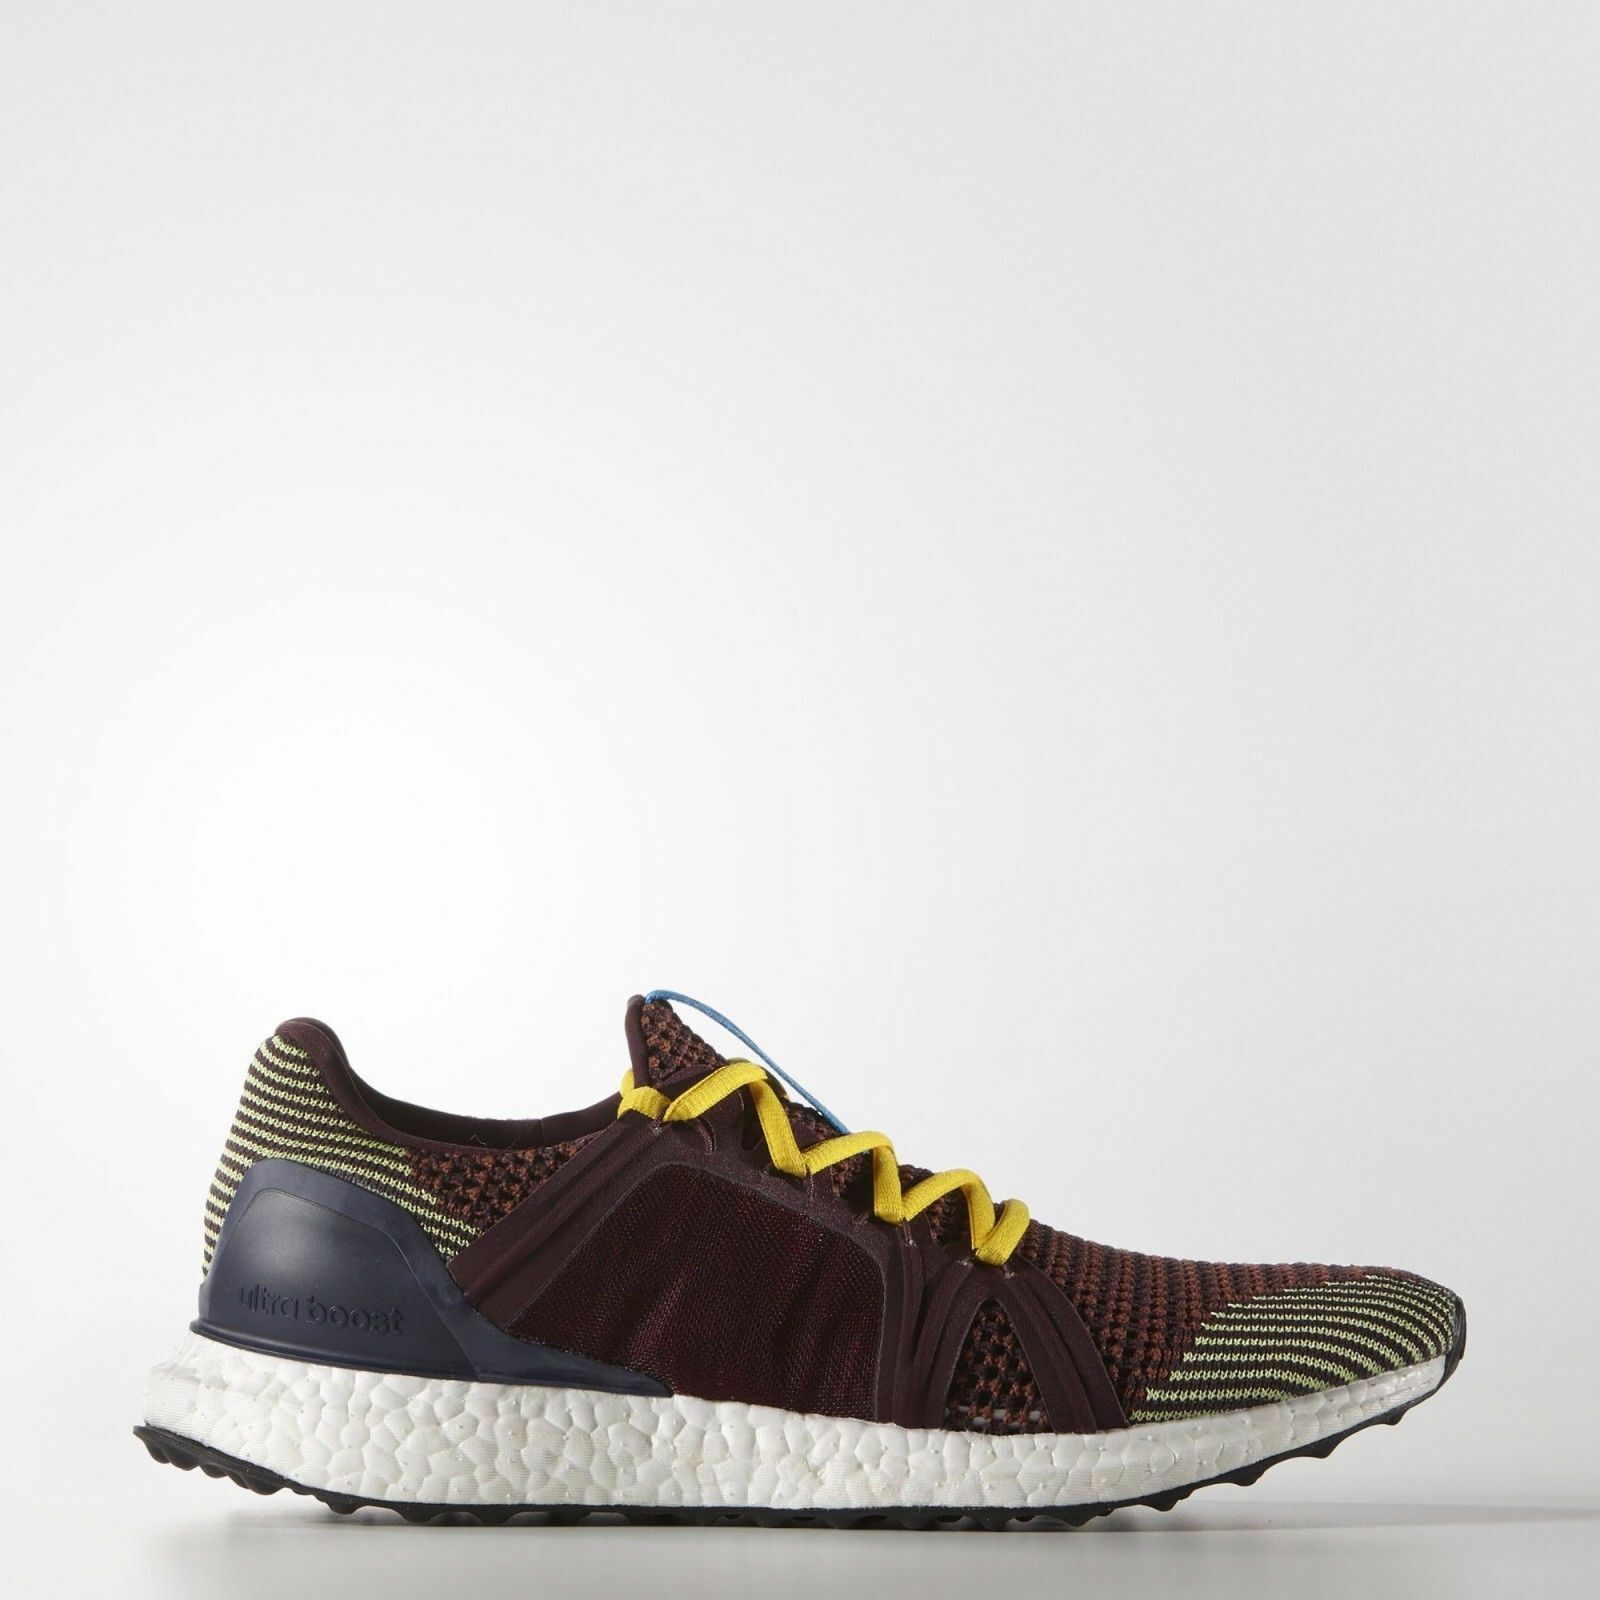 ADIDAS ULTRABOOST X STELLA MC CARTNEY  - Price reduction - BRAND NEW WITH TAGS